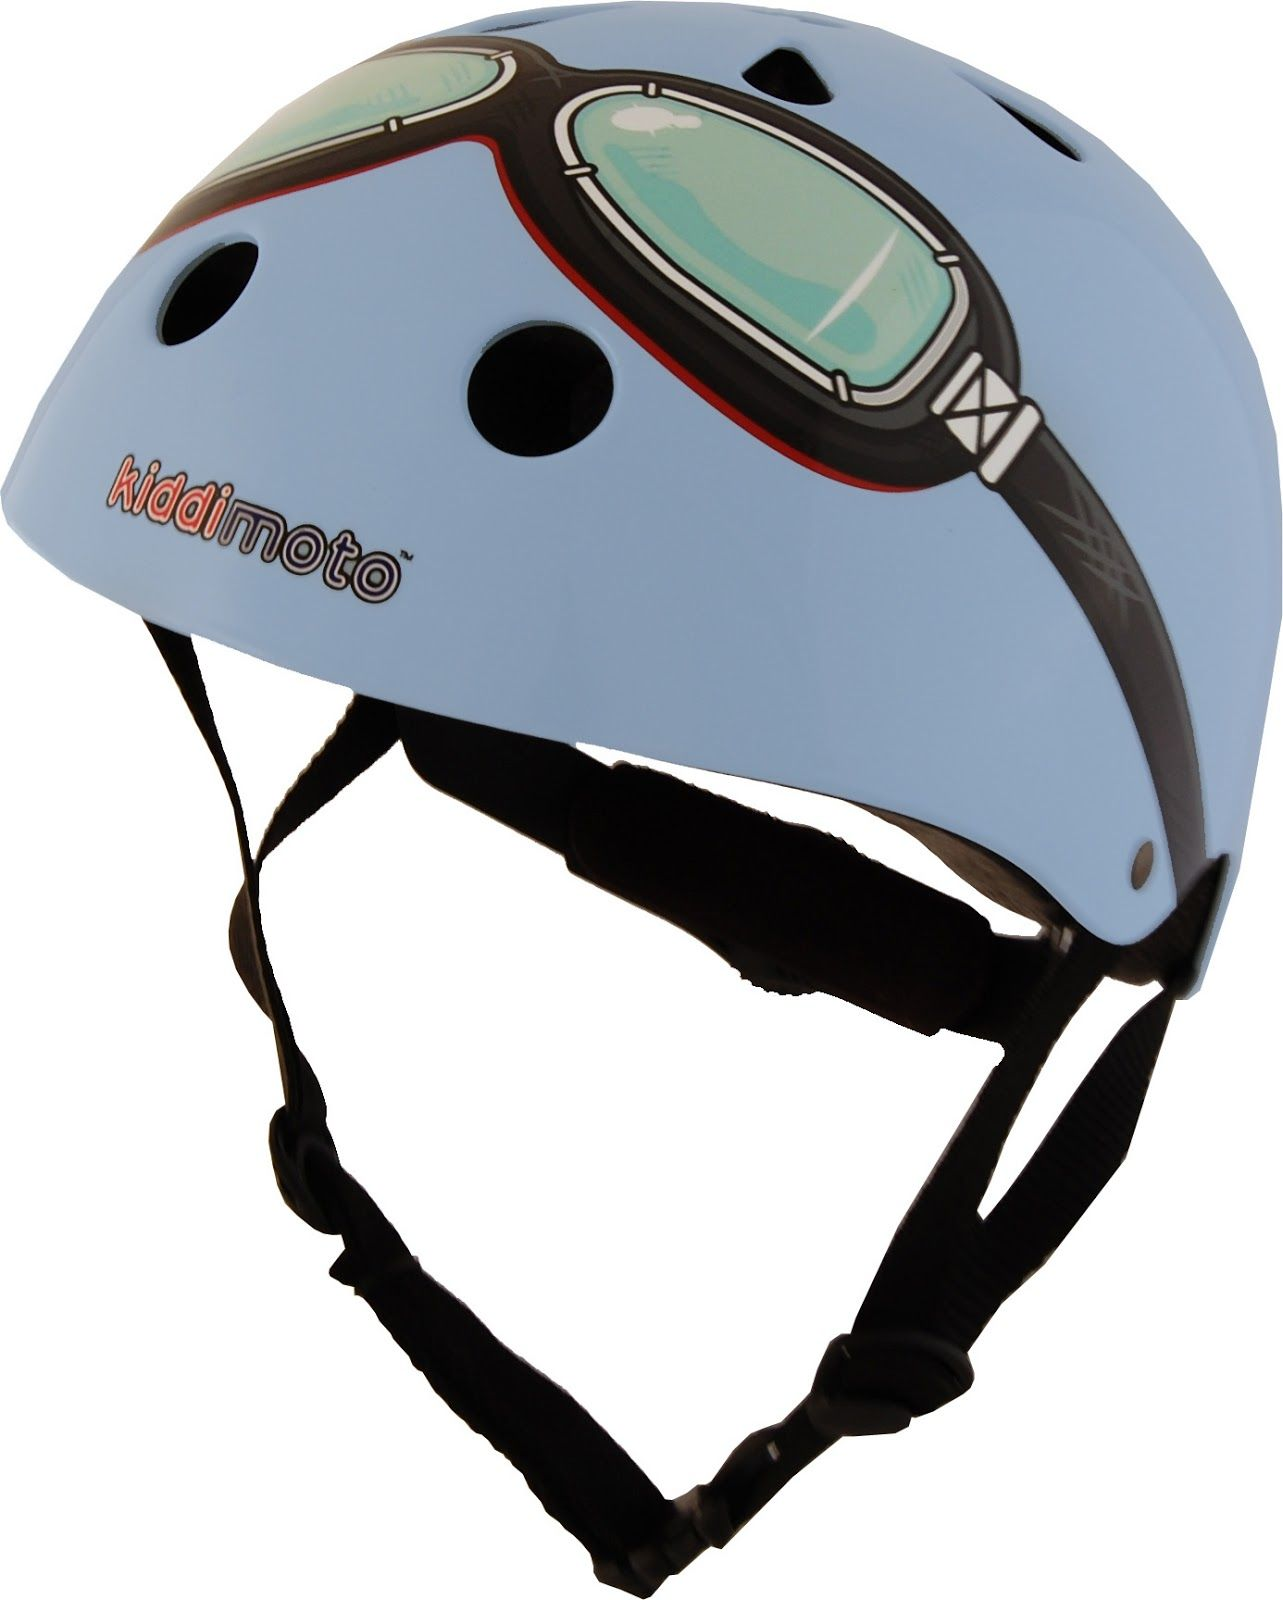 BLUE riding goggle kidimoto helmet t wrapped & delivered cool